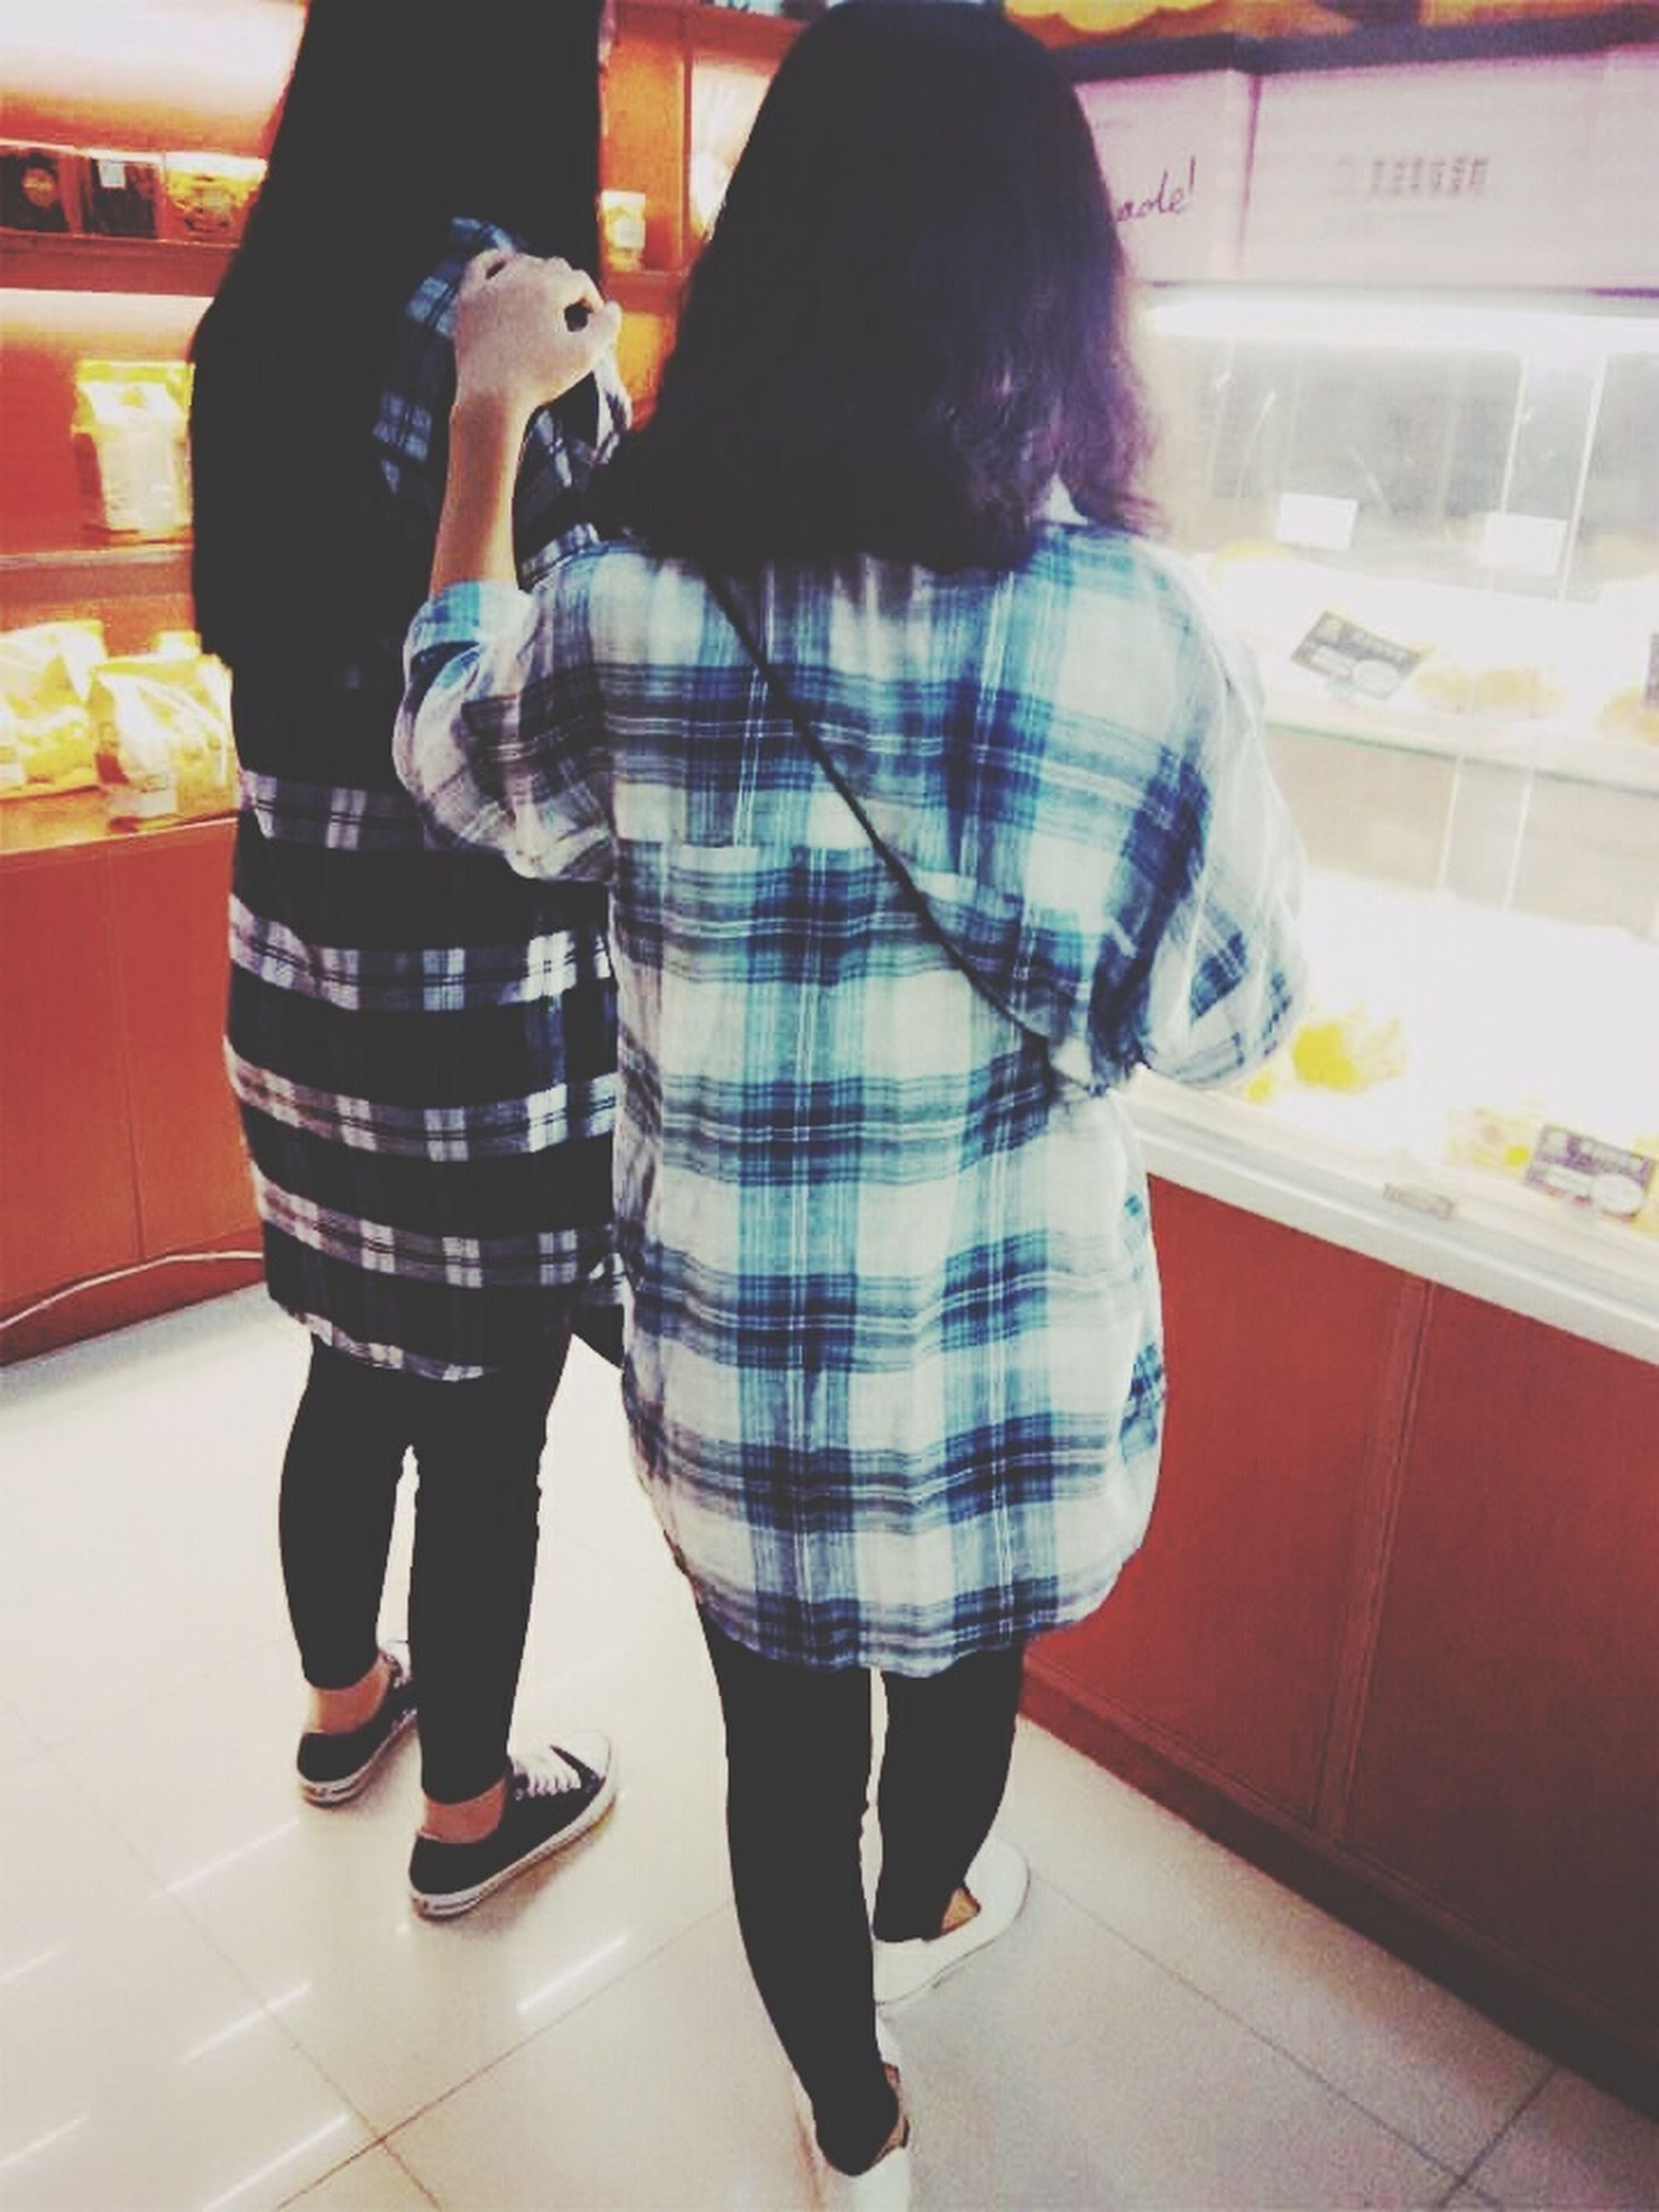 indoors, casual clothing, lifestyles, full length, standing, person, rear view, leisure activity, front view, three quarter length, tiled floor, flooring, walking, side view, holding, fashion, men, store